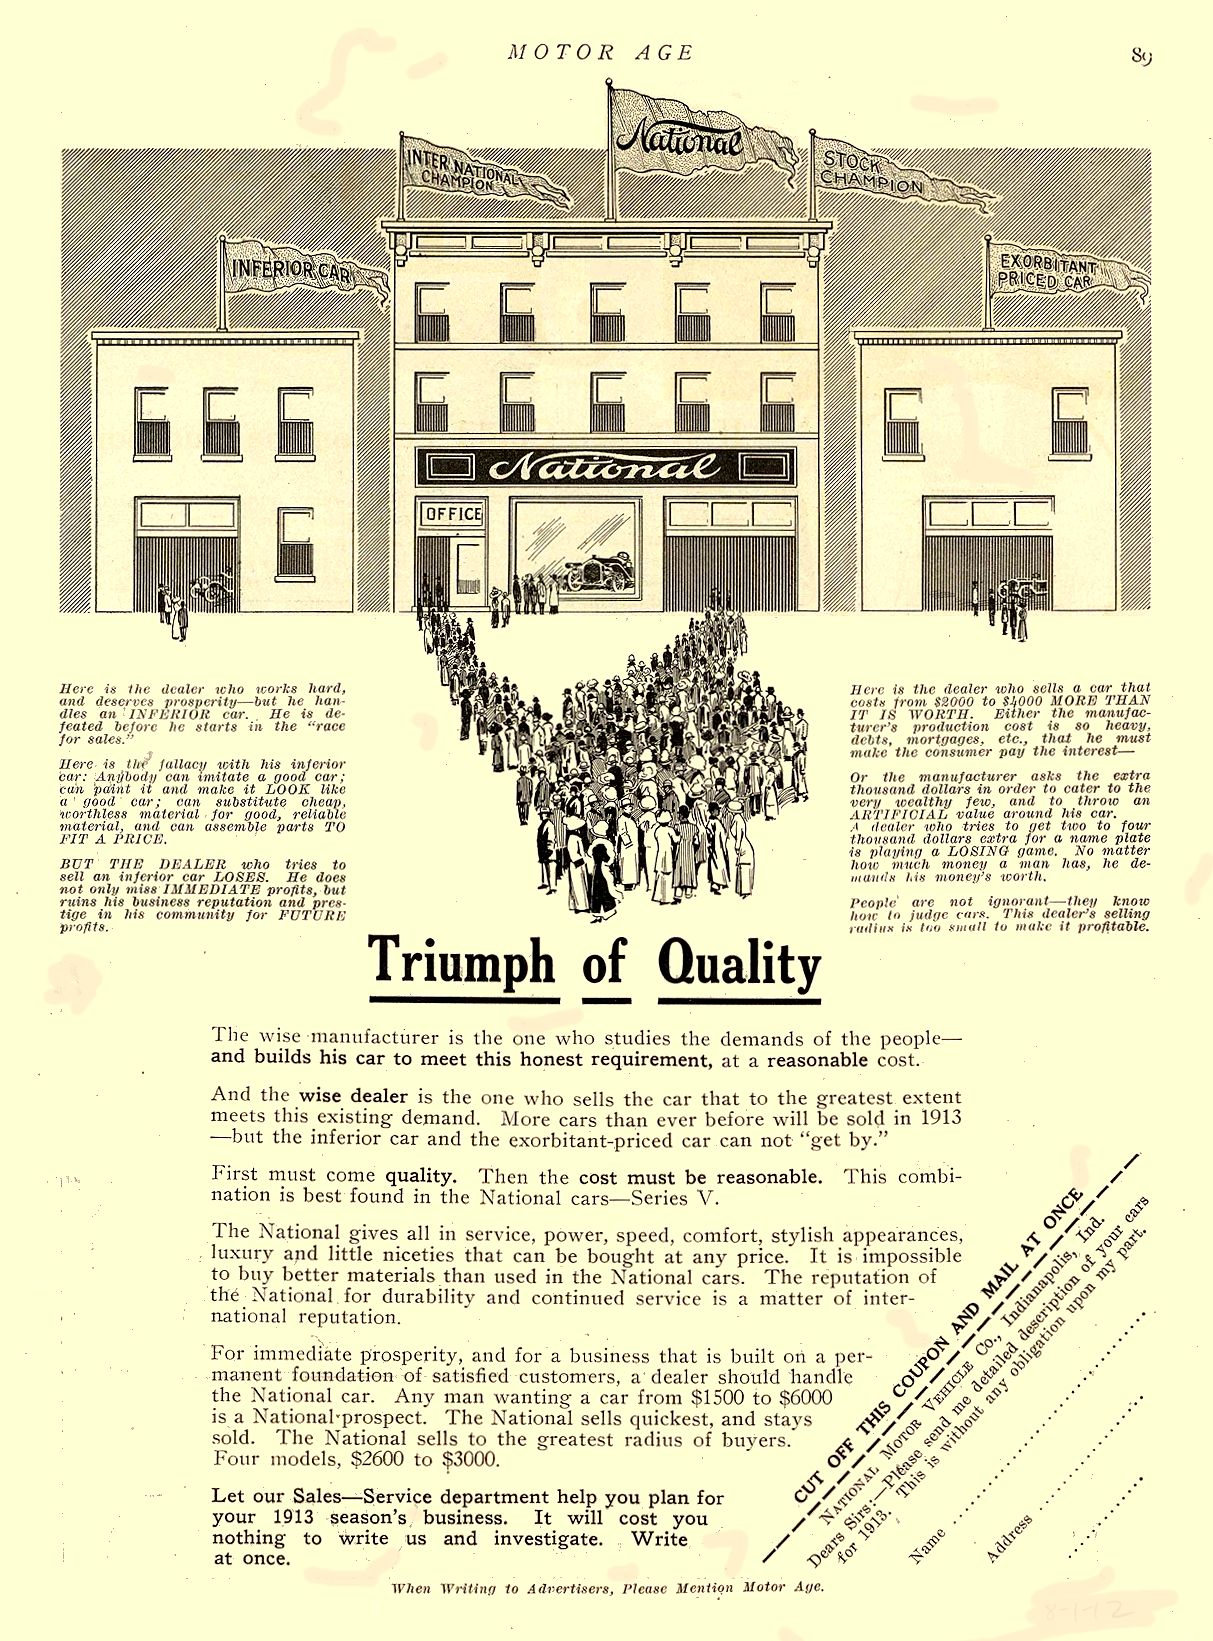 1912 8 1 NATIONAL National Triumph of Quality NATIONAL MOTOR VEHICLE CO. Indianapolis, IND MOTOR AGE August 1, 1912 8.25″x11.5″ page 89